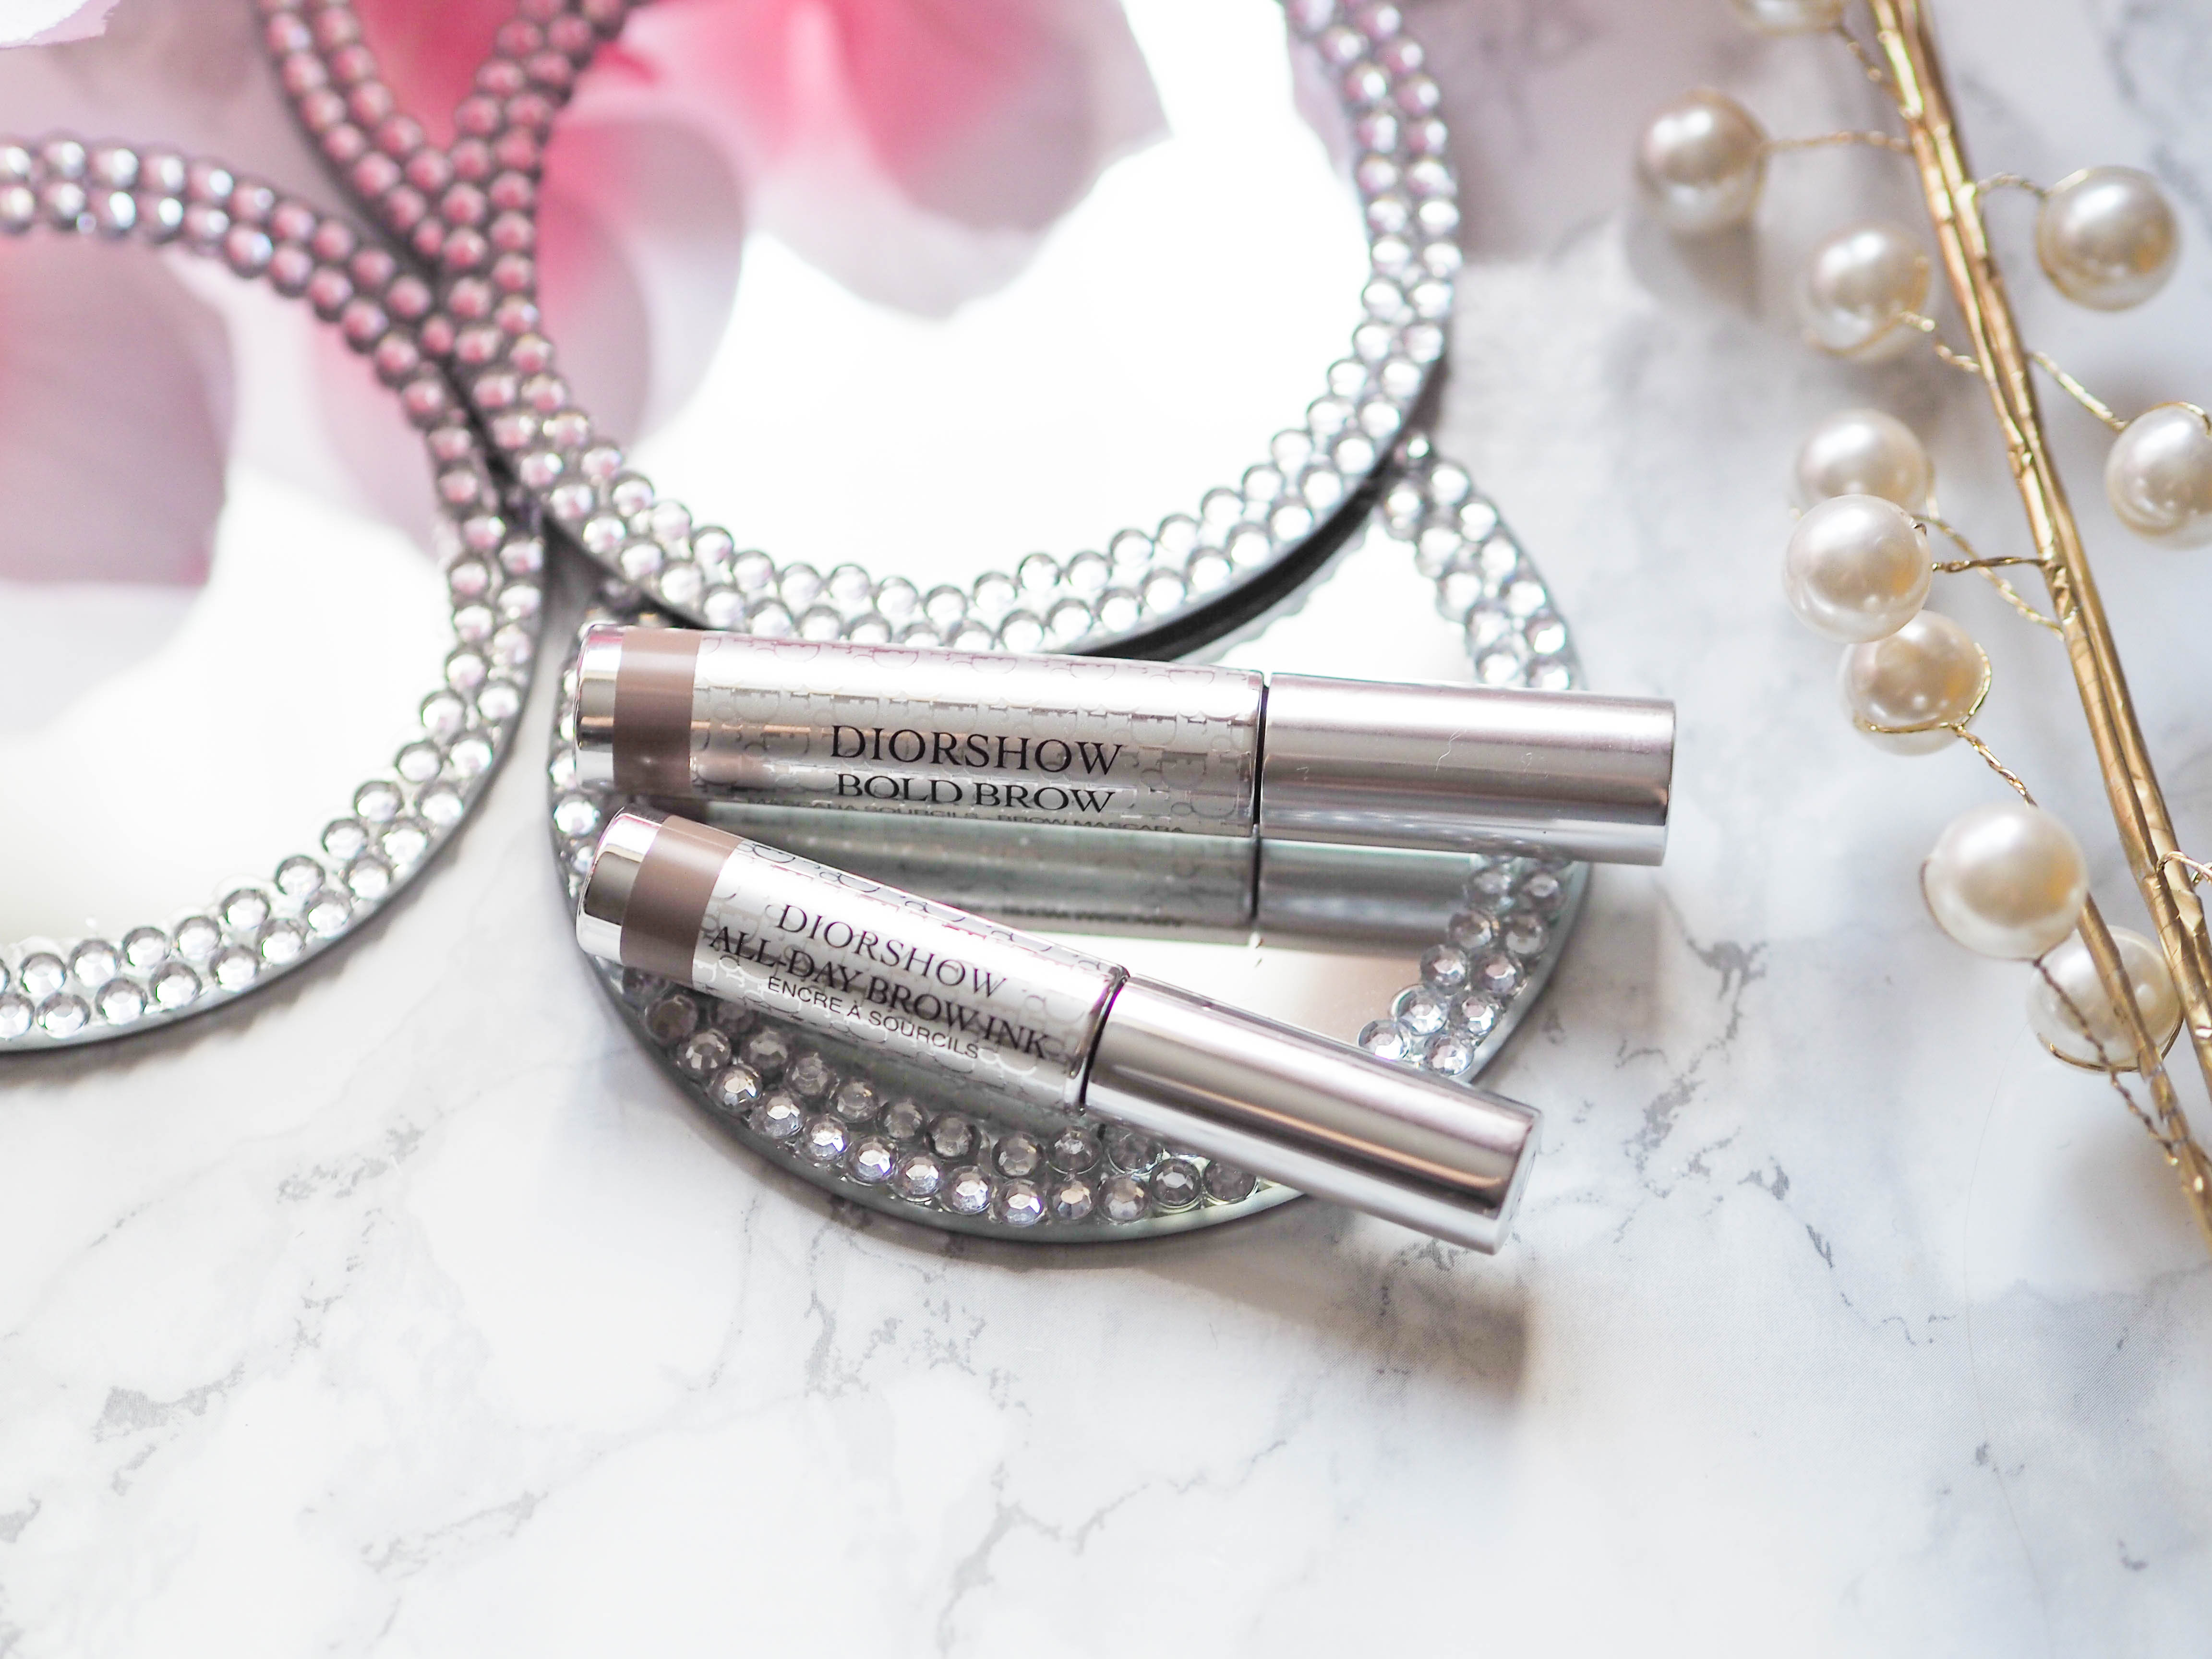 Diorshow All Day brow Ink and Volumizing Mascara Review